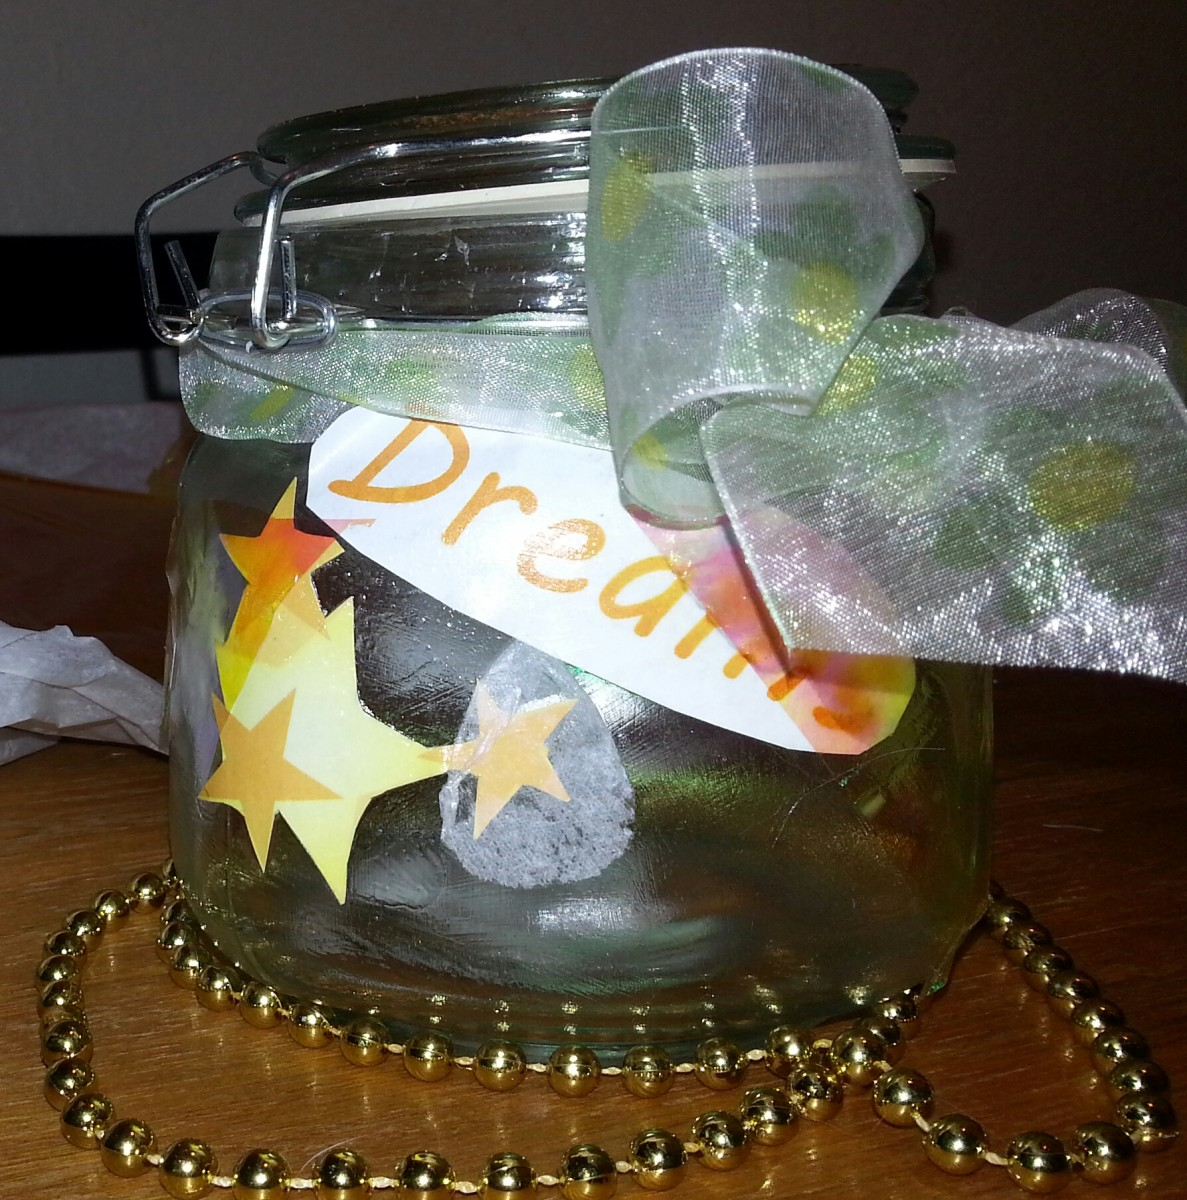 My first memory jar: Hopes, dreams, wishes inside!